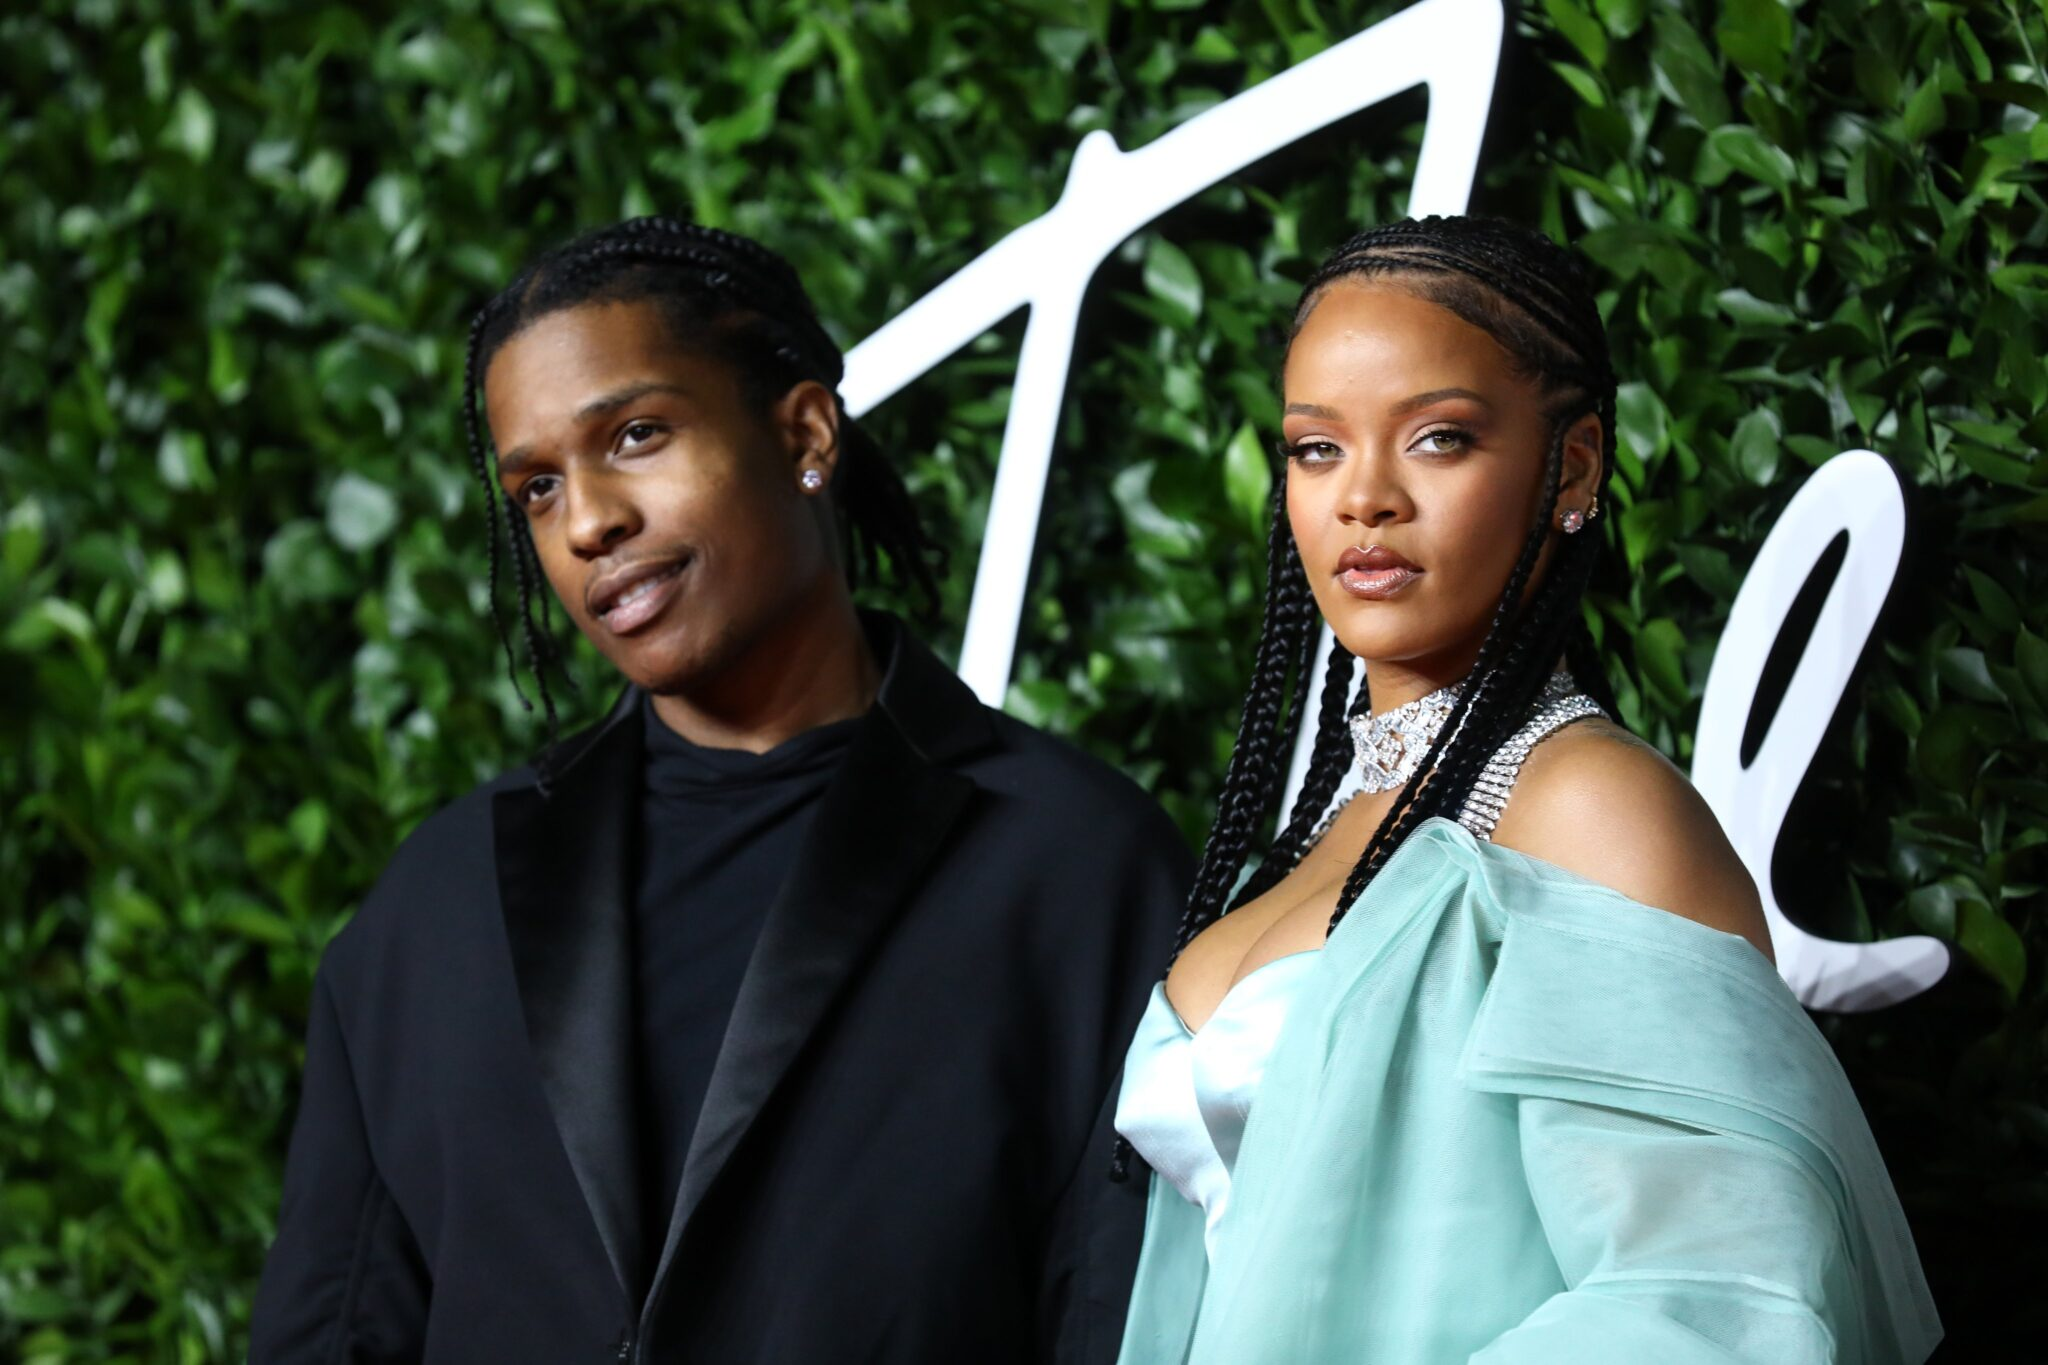 When You know, You Know, She's the one!, Rapper, Rapper, ASAP Rocky confirms dating Rihanna.